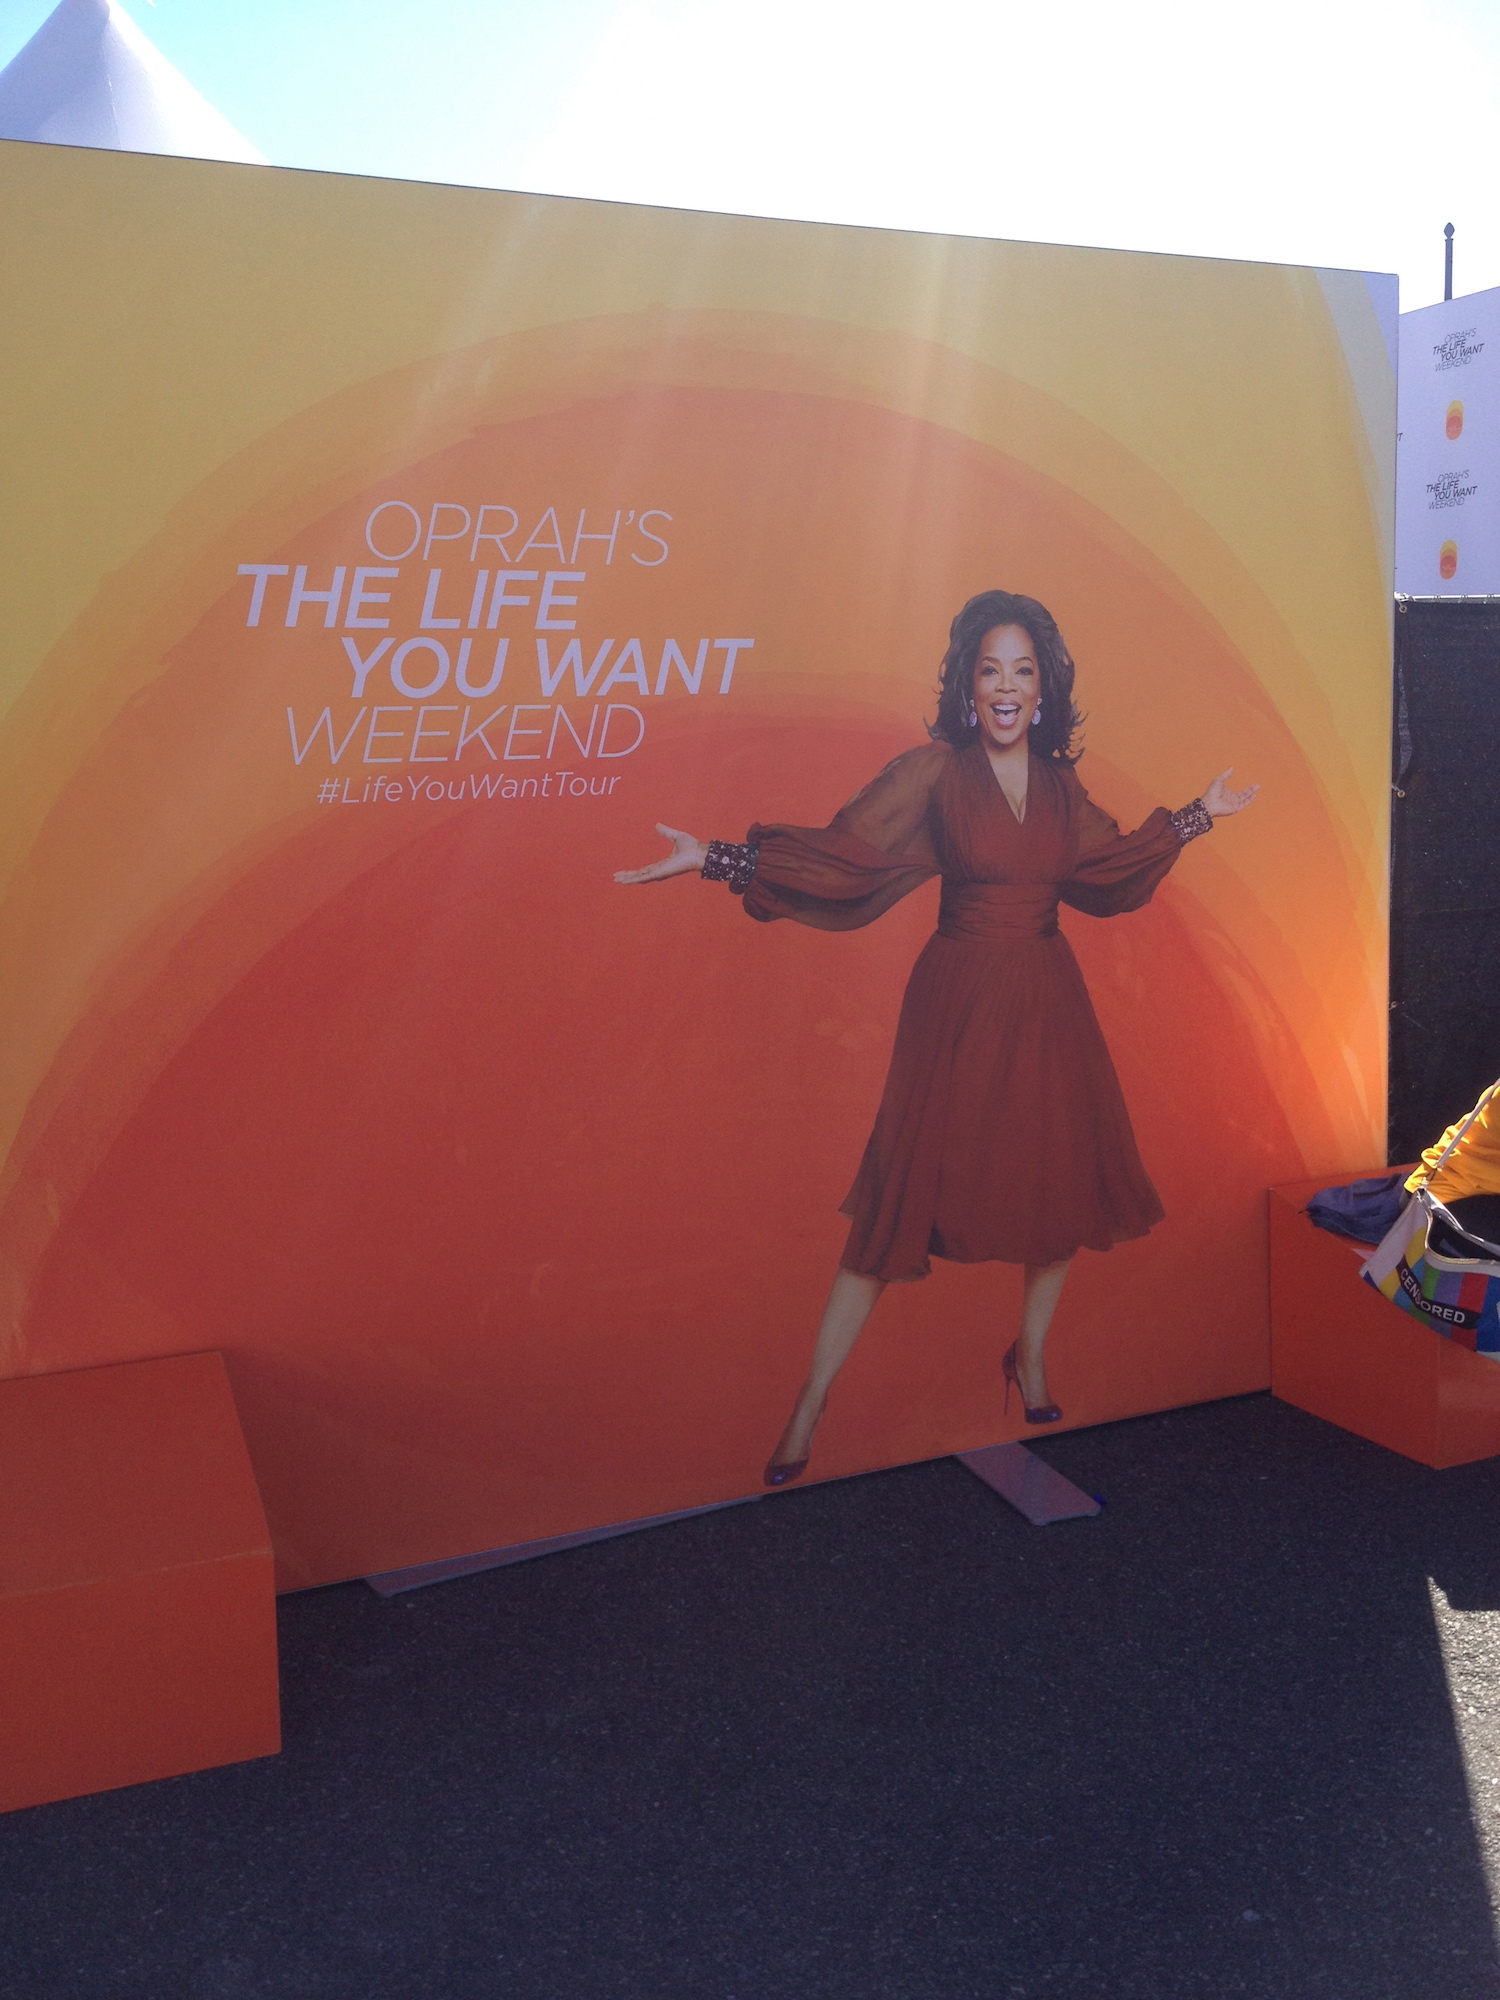 Oprah's Life You Want Weekend Tour